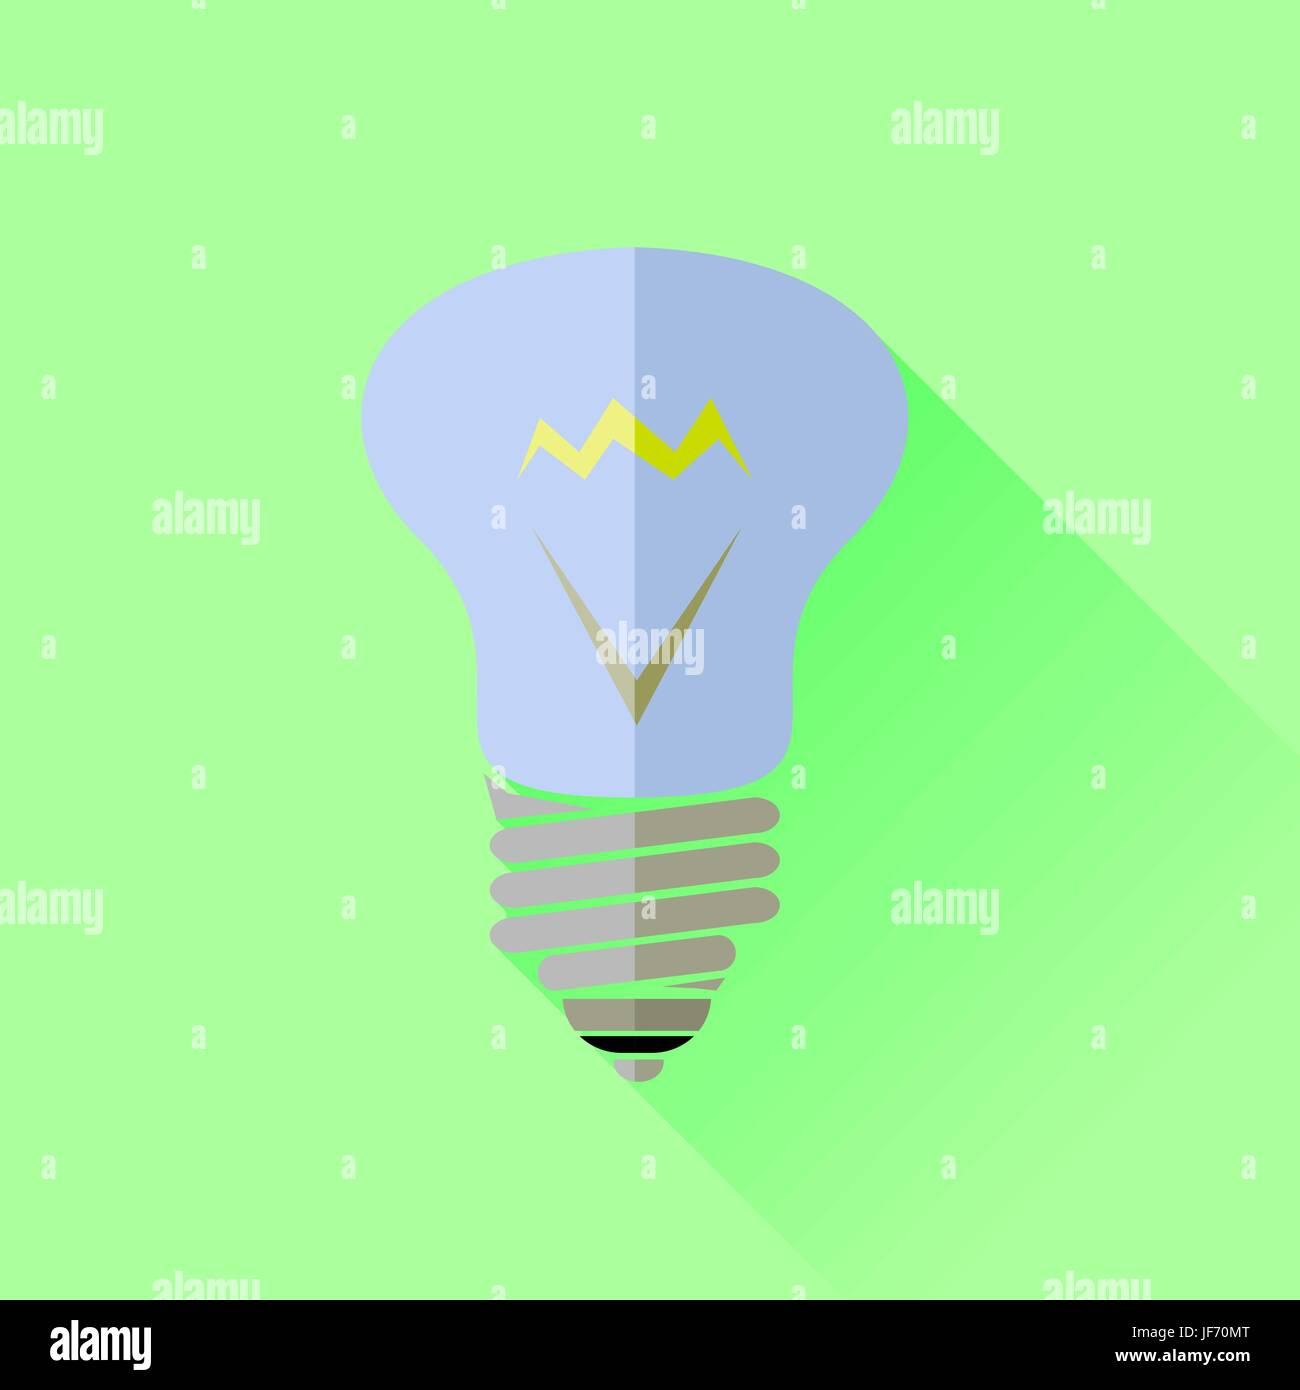 Glass Lamp Vector Glass Lamp Icon Isolated On Green Background Stock Vector